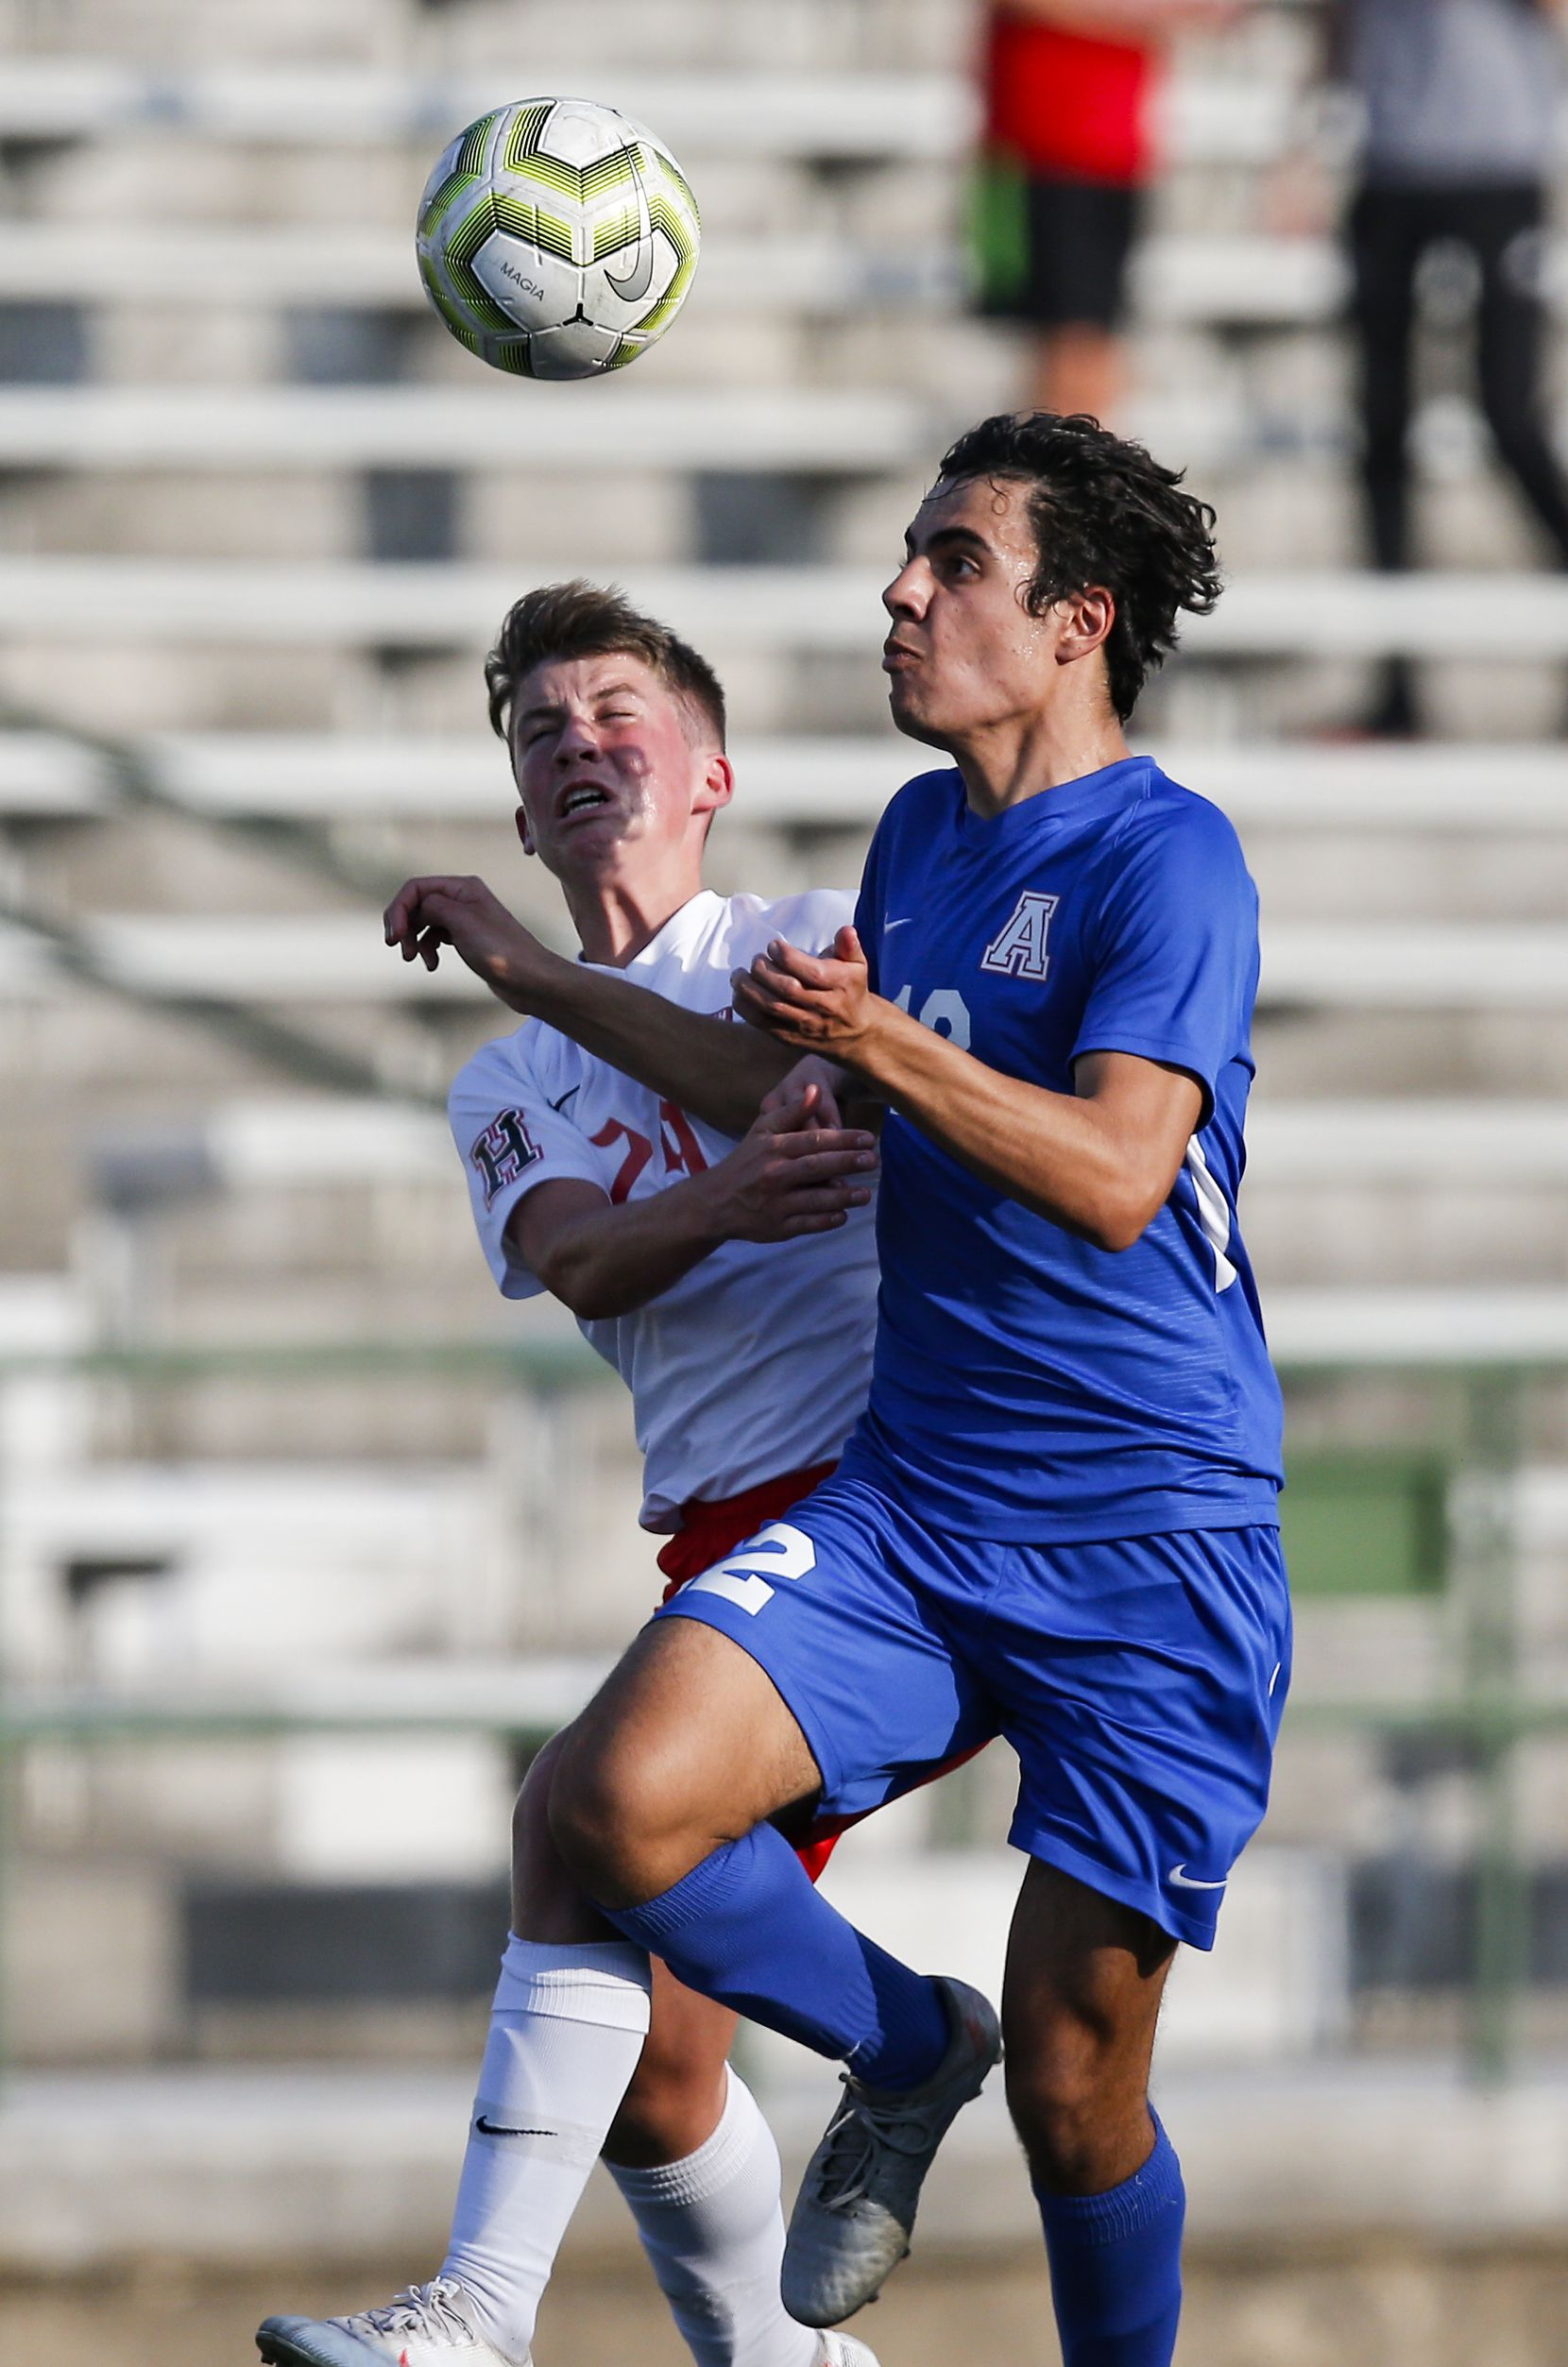 Rockwall-Heath freshman midfielder Andrew Cooley, left, and Allen senior midfielder David Sajdak battle for the ball during the first half of a boys soccer Class 6A state semifinal at Mesquite Memorial Stadium in Mesquite, Tuesday, April 13, 2021. (Brandon Wade/Special Contributor)